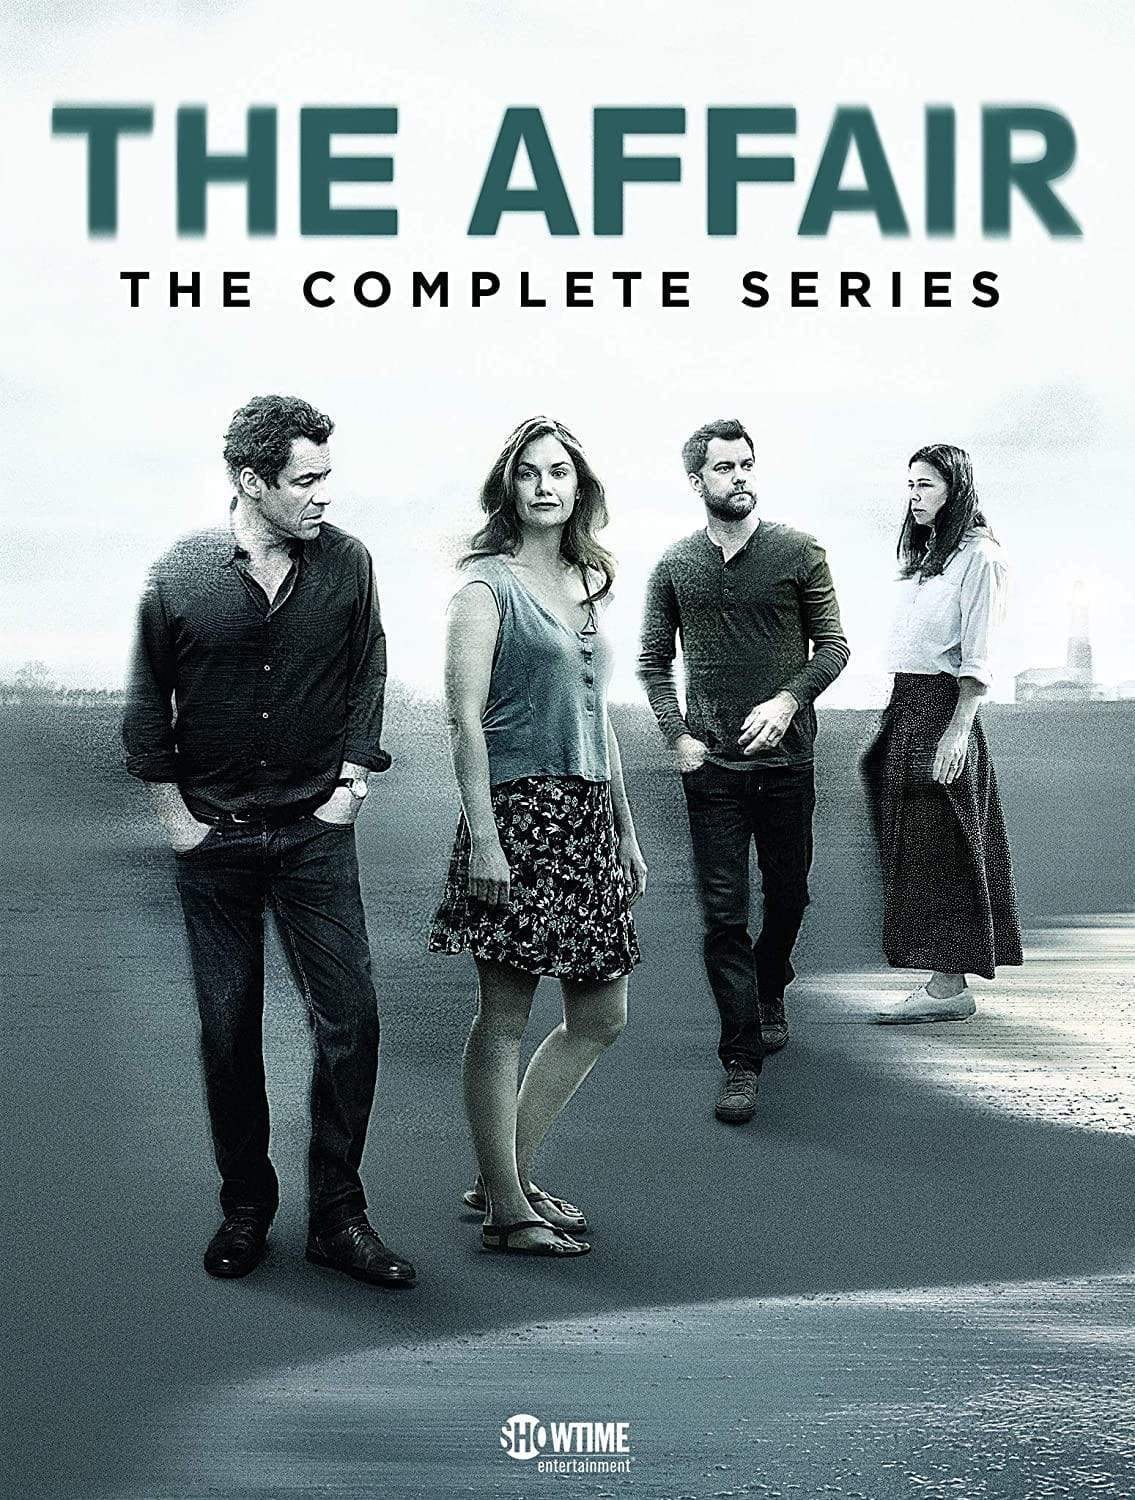 The Affair TV Series Complete DVD Box Set Blaze DVDs DVDs & Blu-ray Discs > DVDs